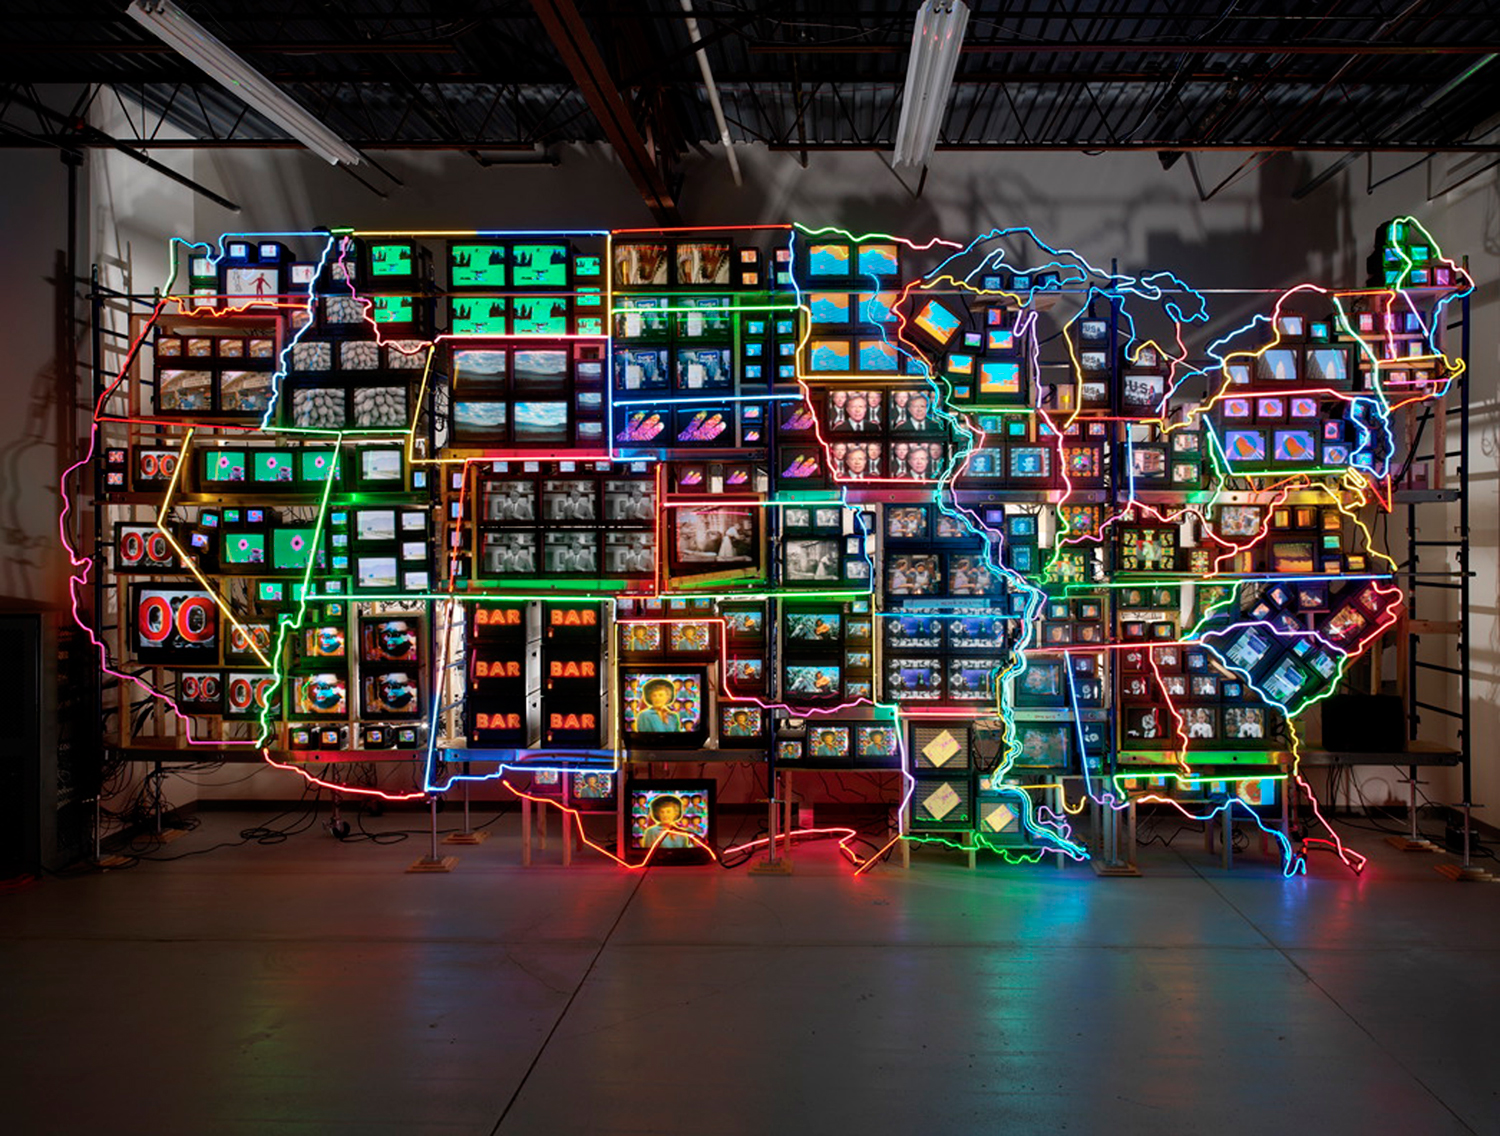 Nam june paik  electronic superhighway  continental u.s.  alaska  hawaii  1995